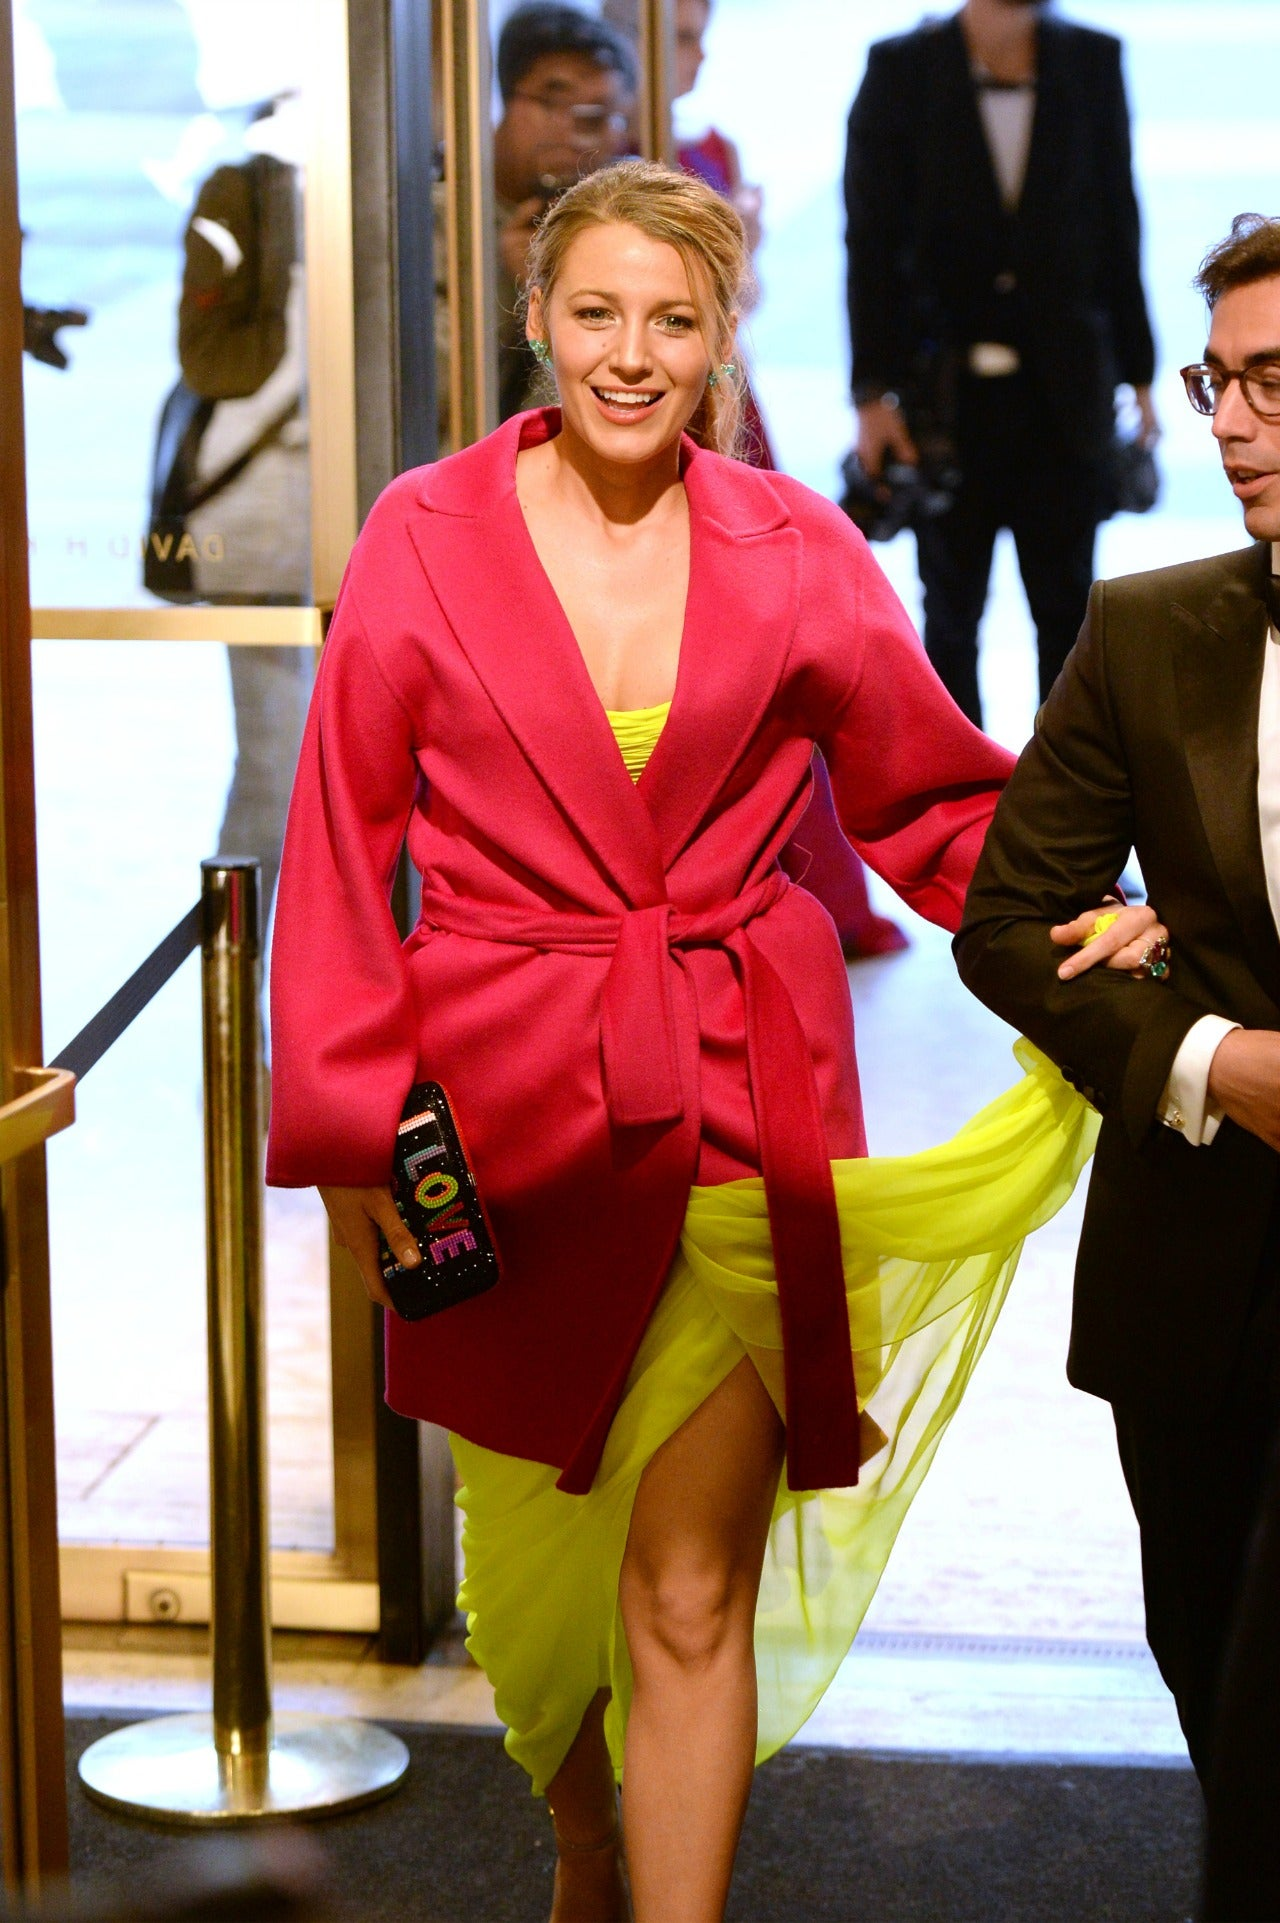 Blake Lively Is Lovely in Bright Yellow Strapless Gown at Ballet